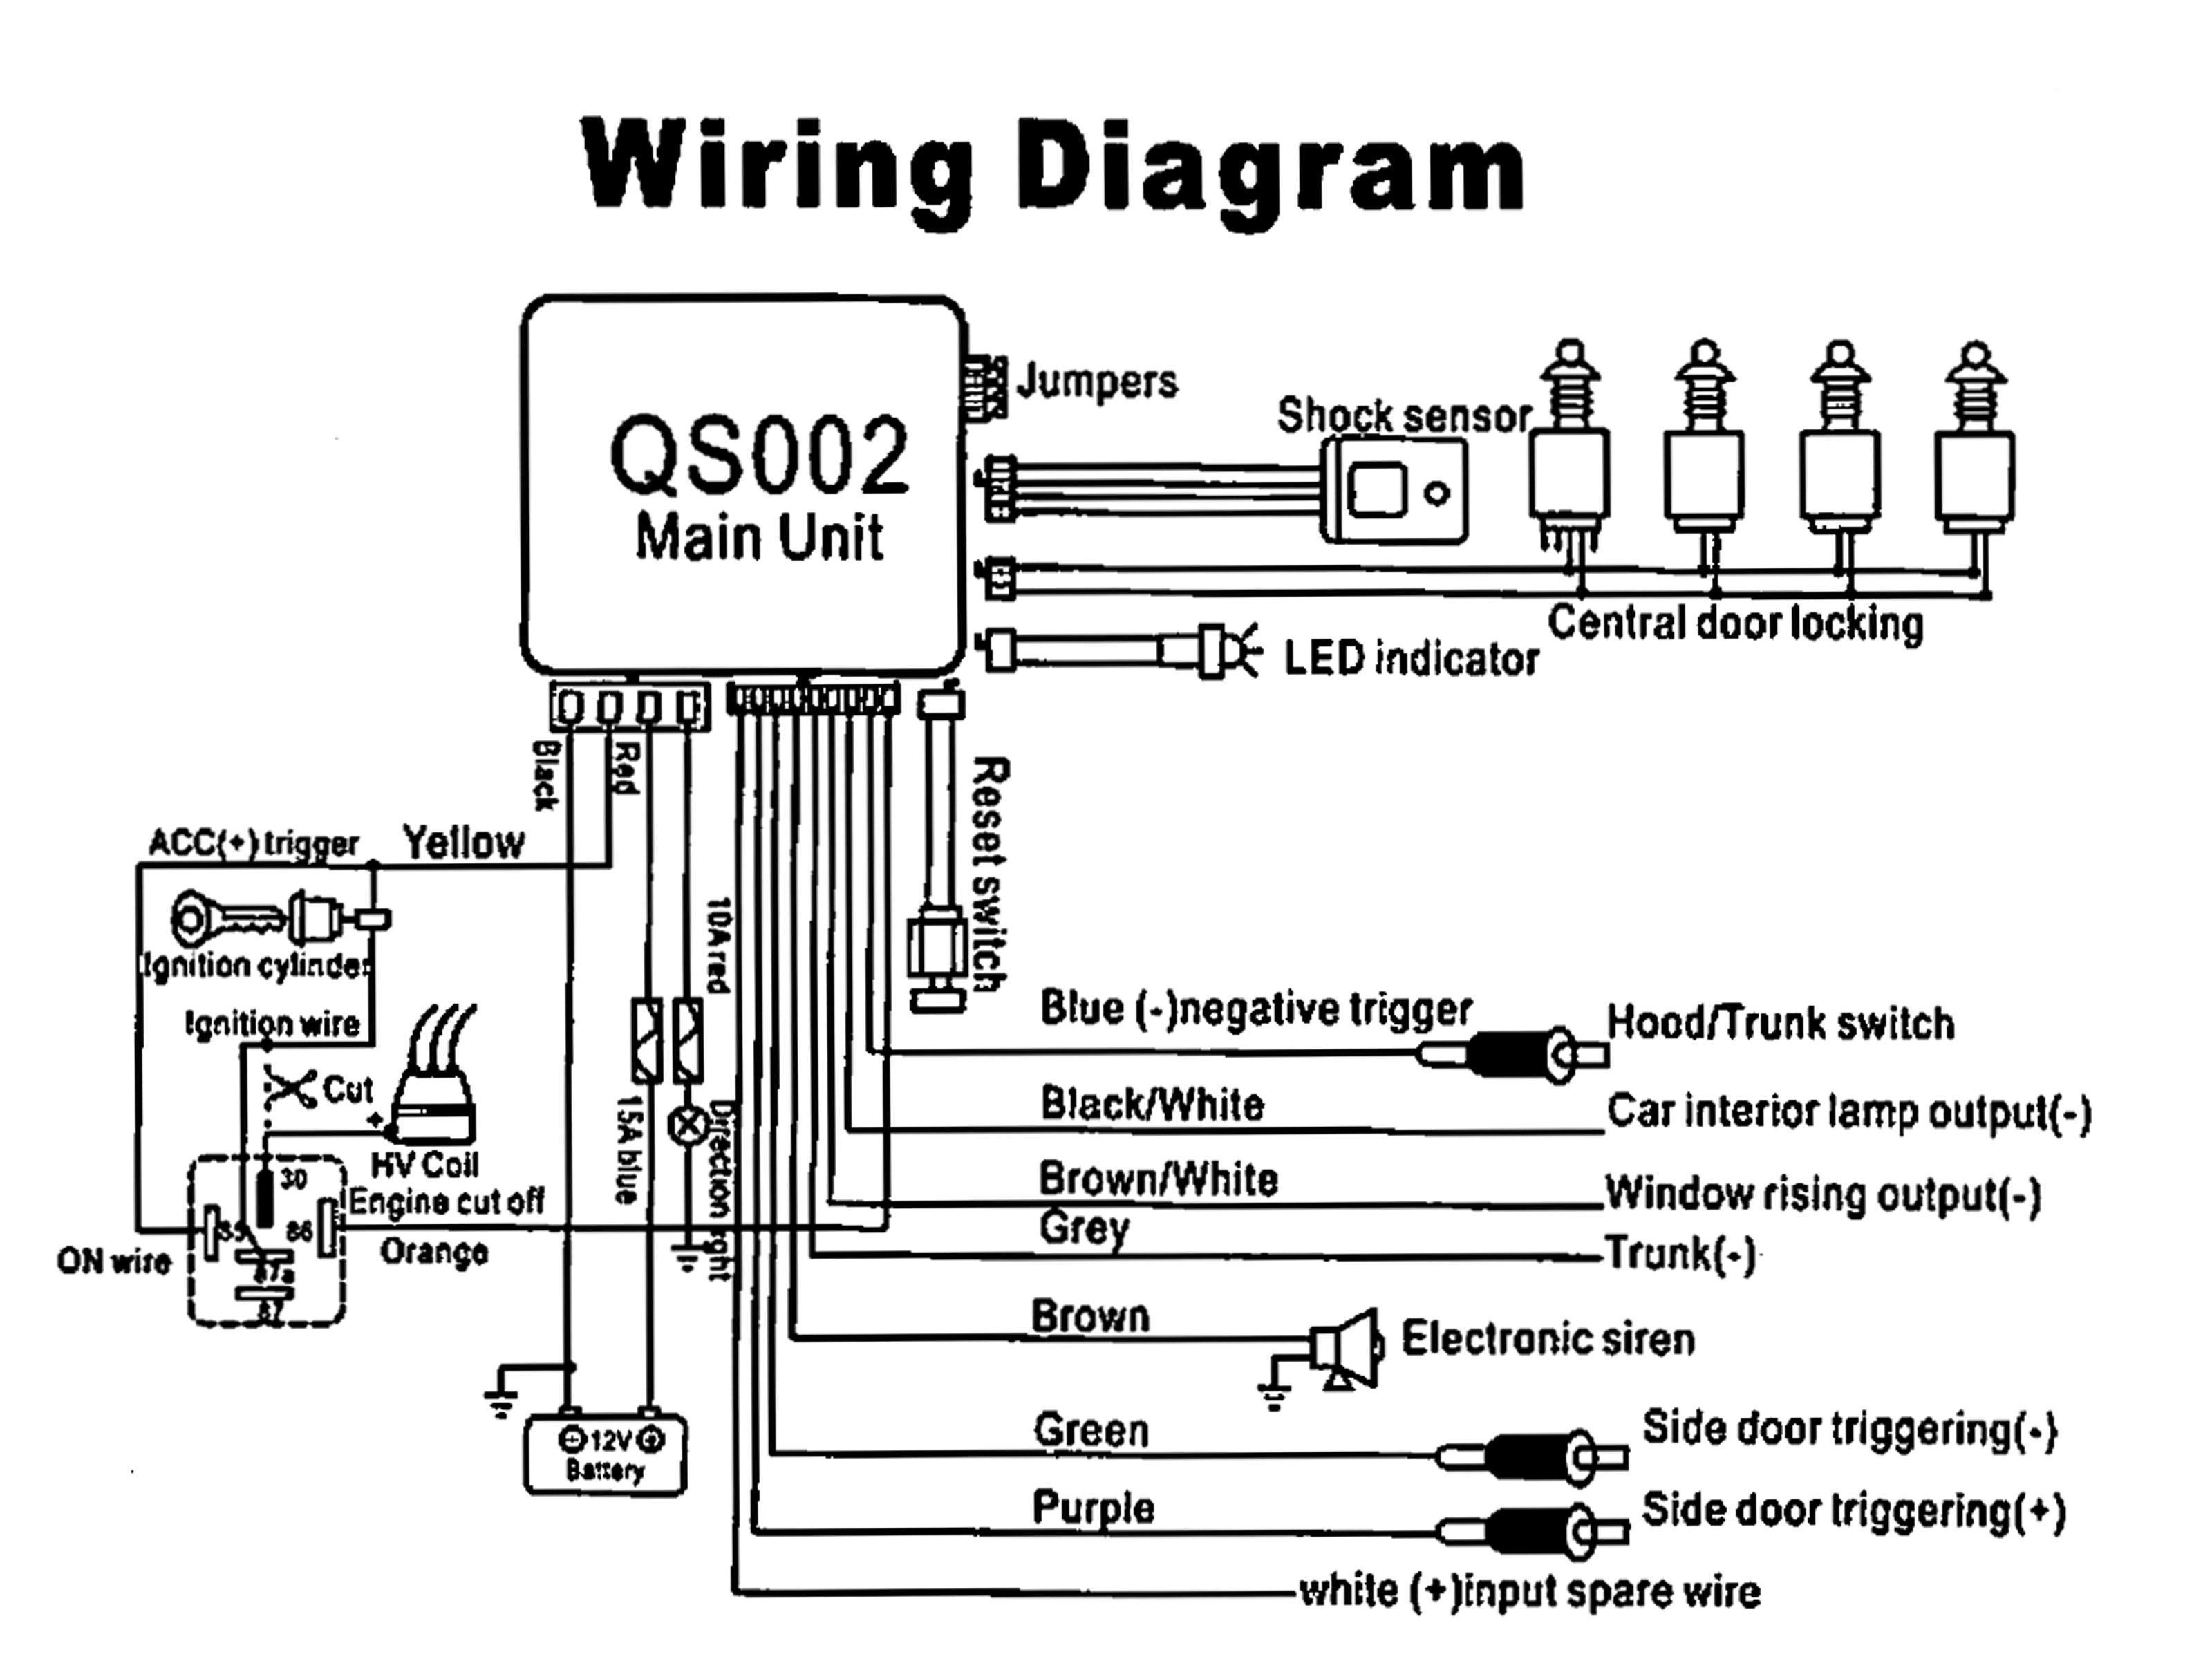 [SCHEMATICS_4UK]  DIAGRAM] Co Car Alarm Wiring Diagram FULL Version HD Quality Wiring Diagram  - MOTOGPGEAR4LESS.DELI-MULTISERVICES.FR | Alarm Install Wiring Diagram |  | motogpgear4less.deli-multiservices.fr